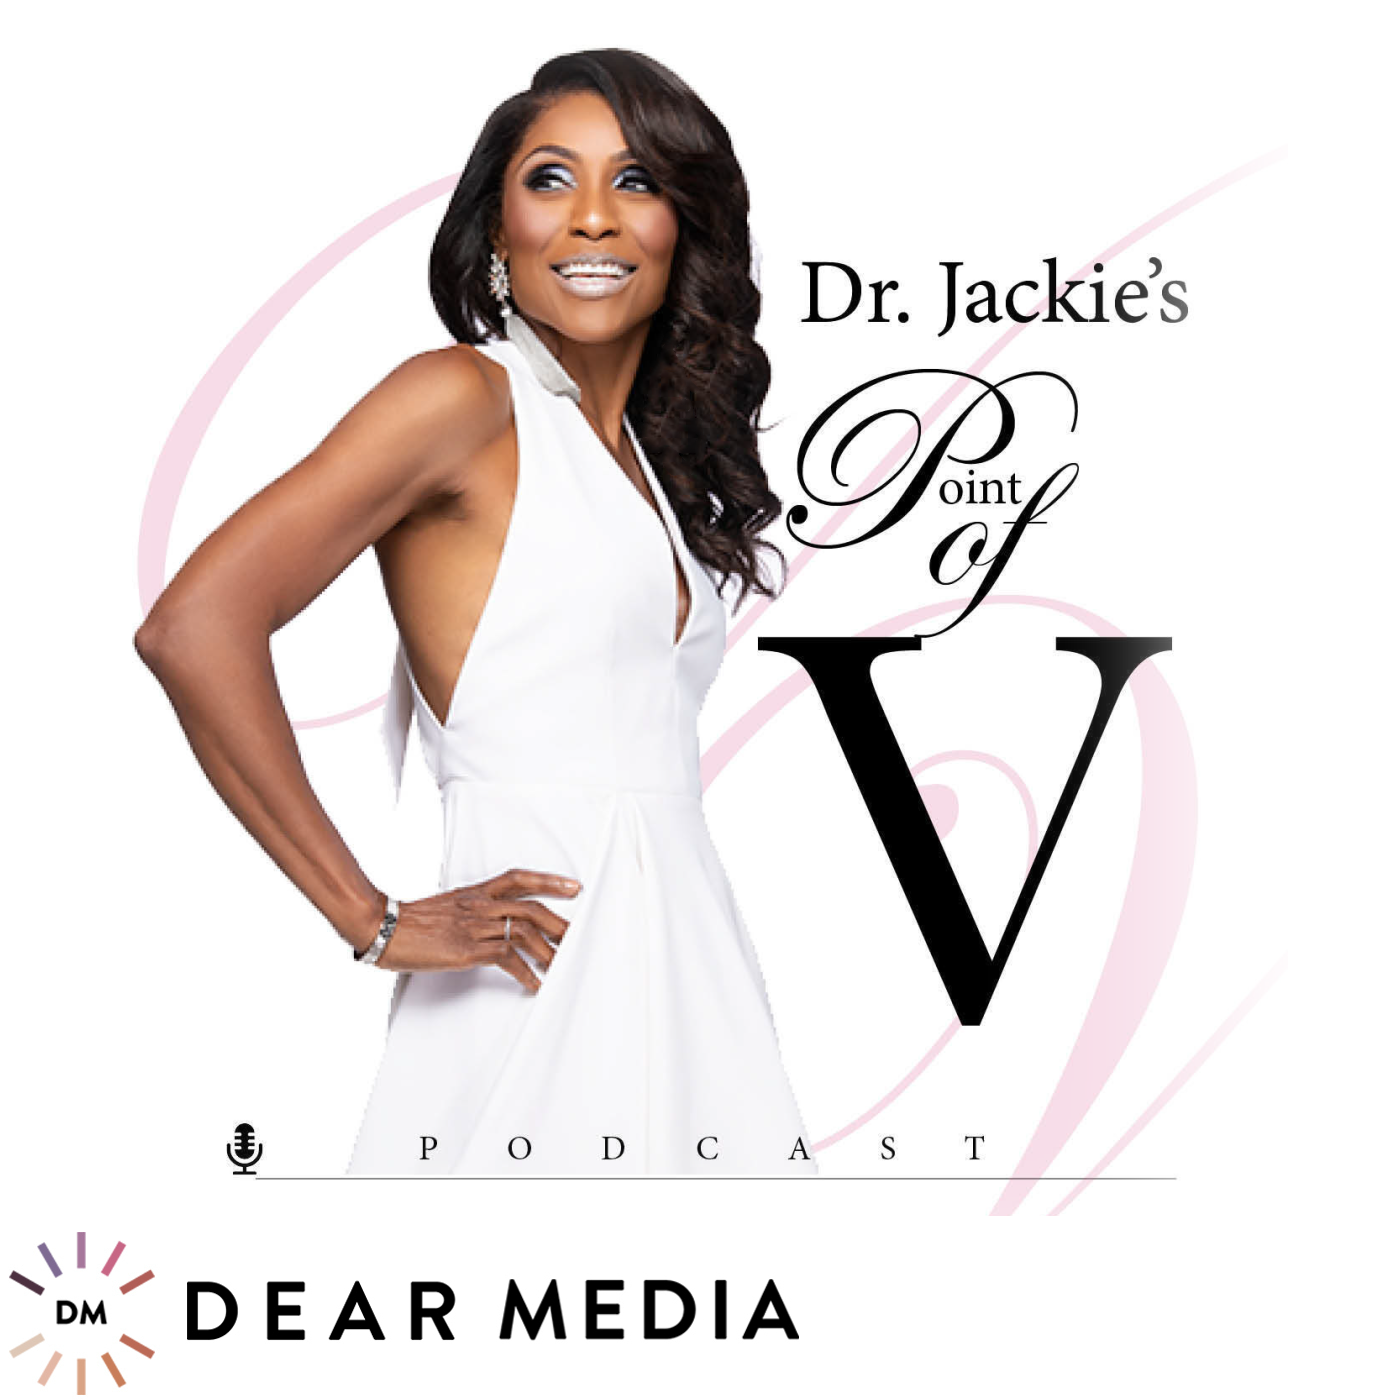 Dr. Jackie's Point of V show art